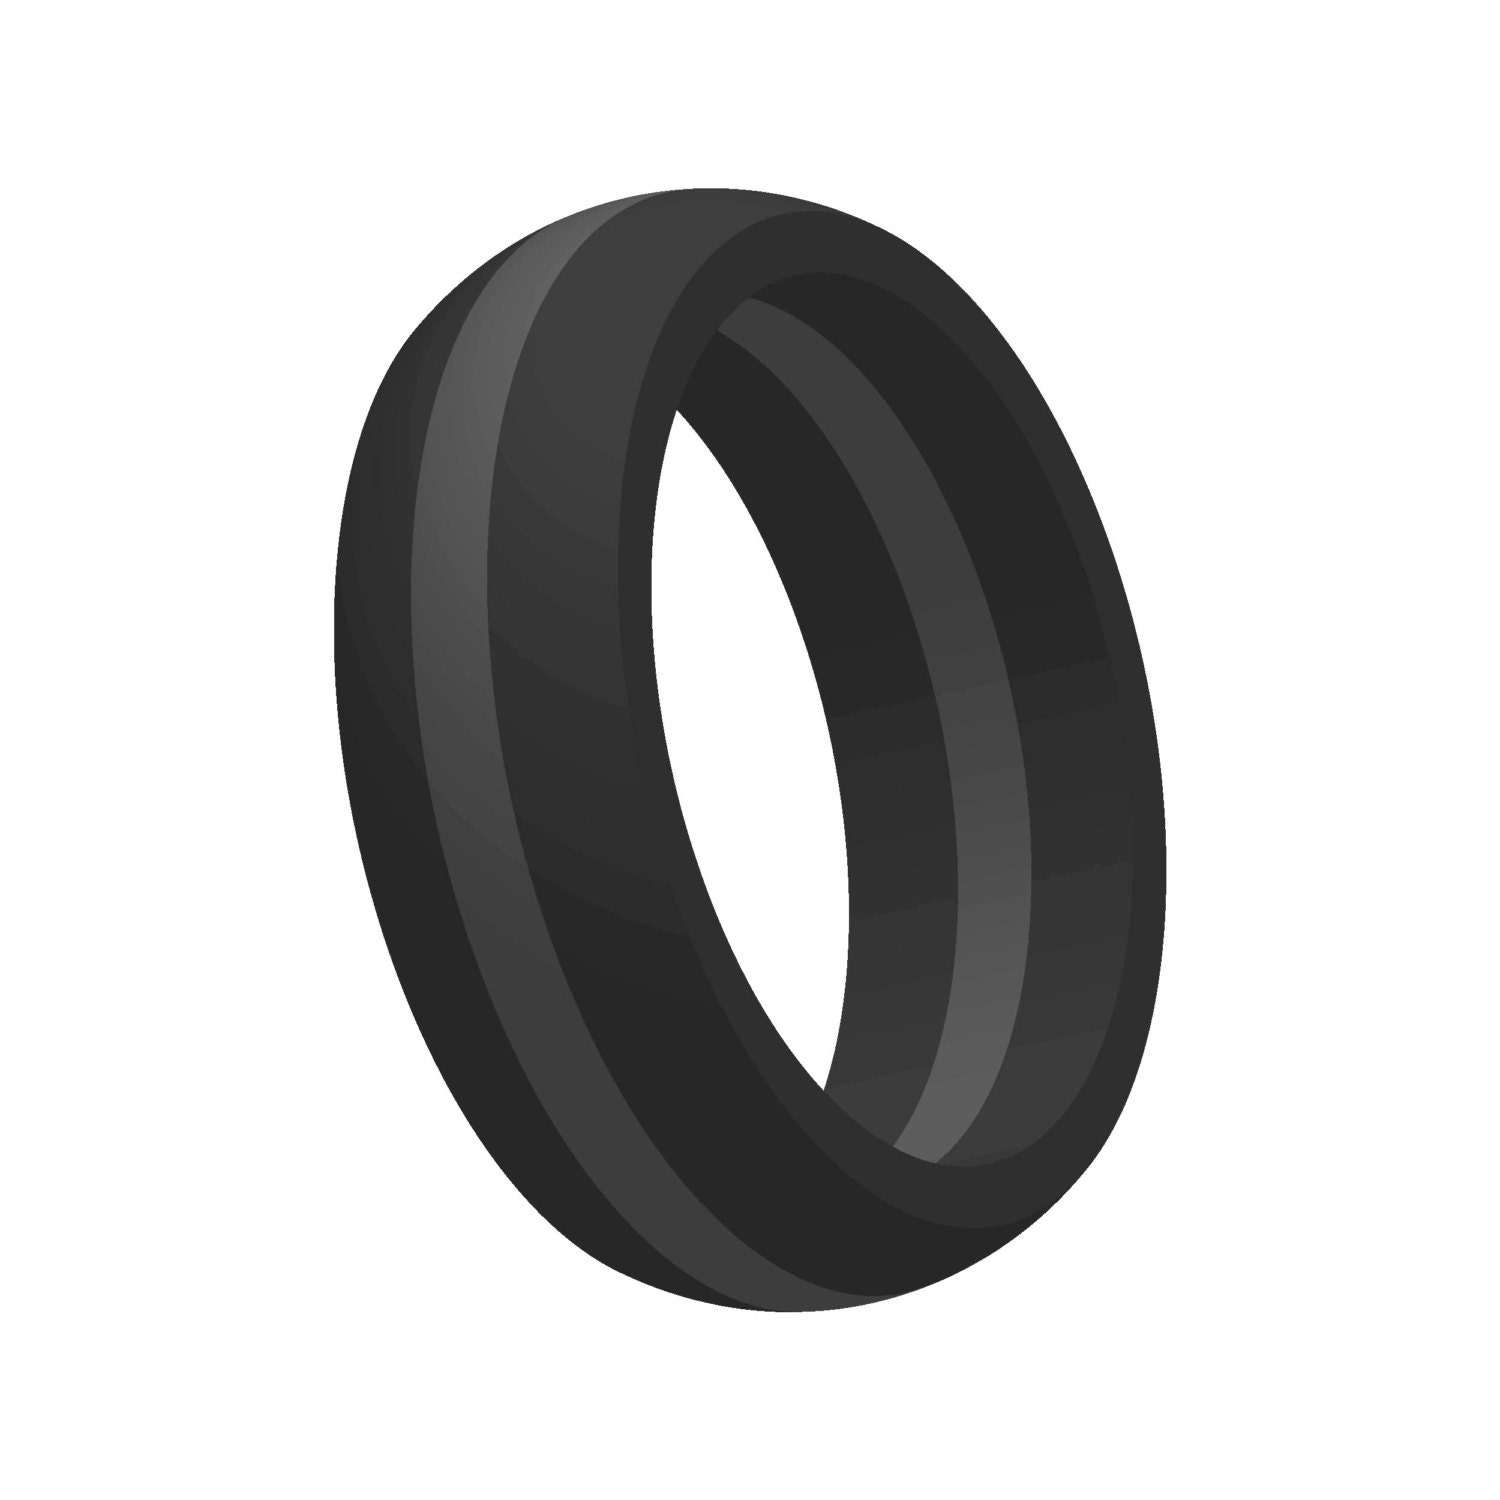 ModernFashionCo flexible wedding ring Mens Black w Gray Line Silicone Wedding Engagement Ring Band Flexible Hypoallergenic Modern Sports Athletic Mans Jewelry FAST FREE SHIPPING